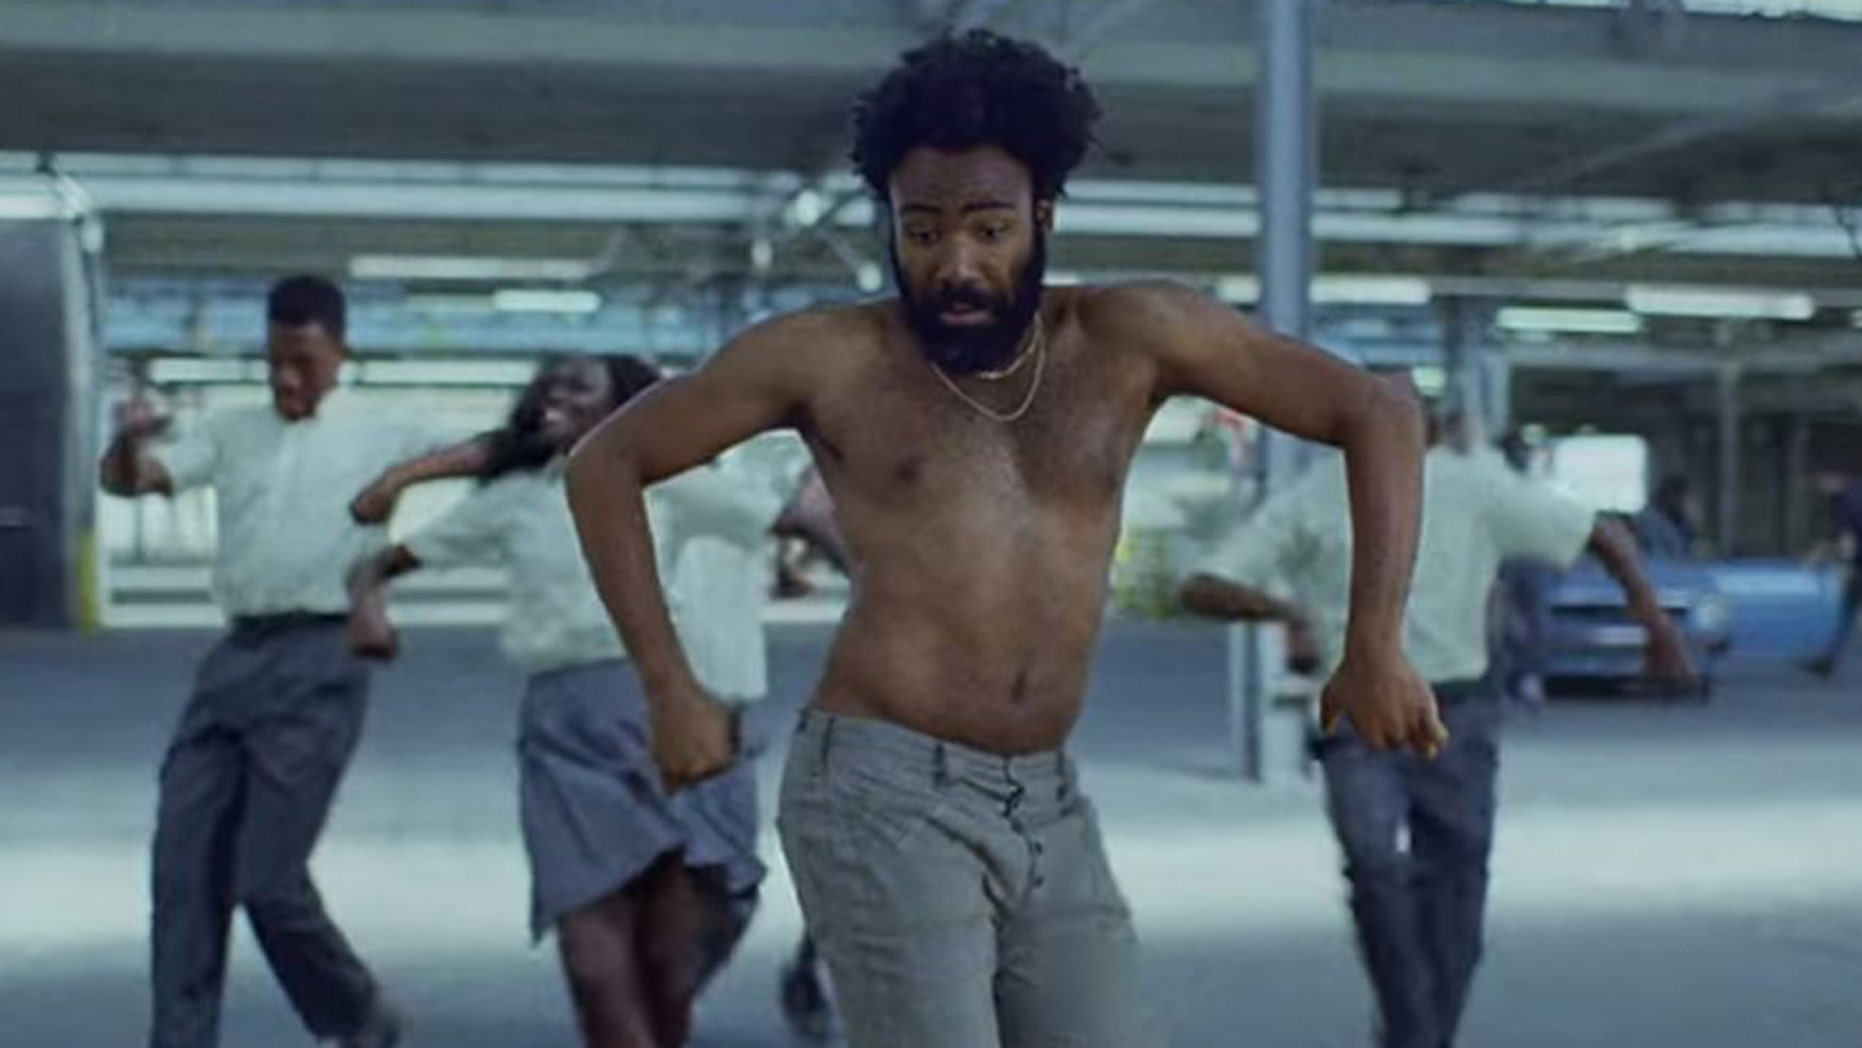 Donald Glover took a storm in 2018 as an actor and a musician. Here the rappers danced in the clip for